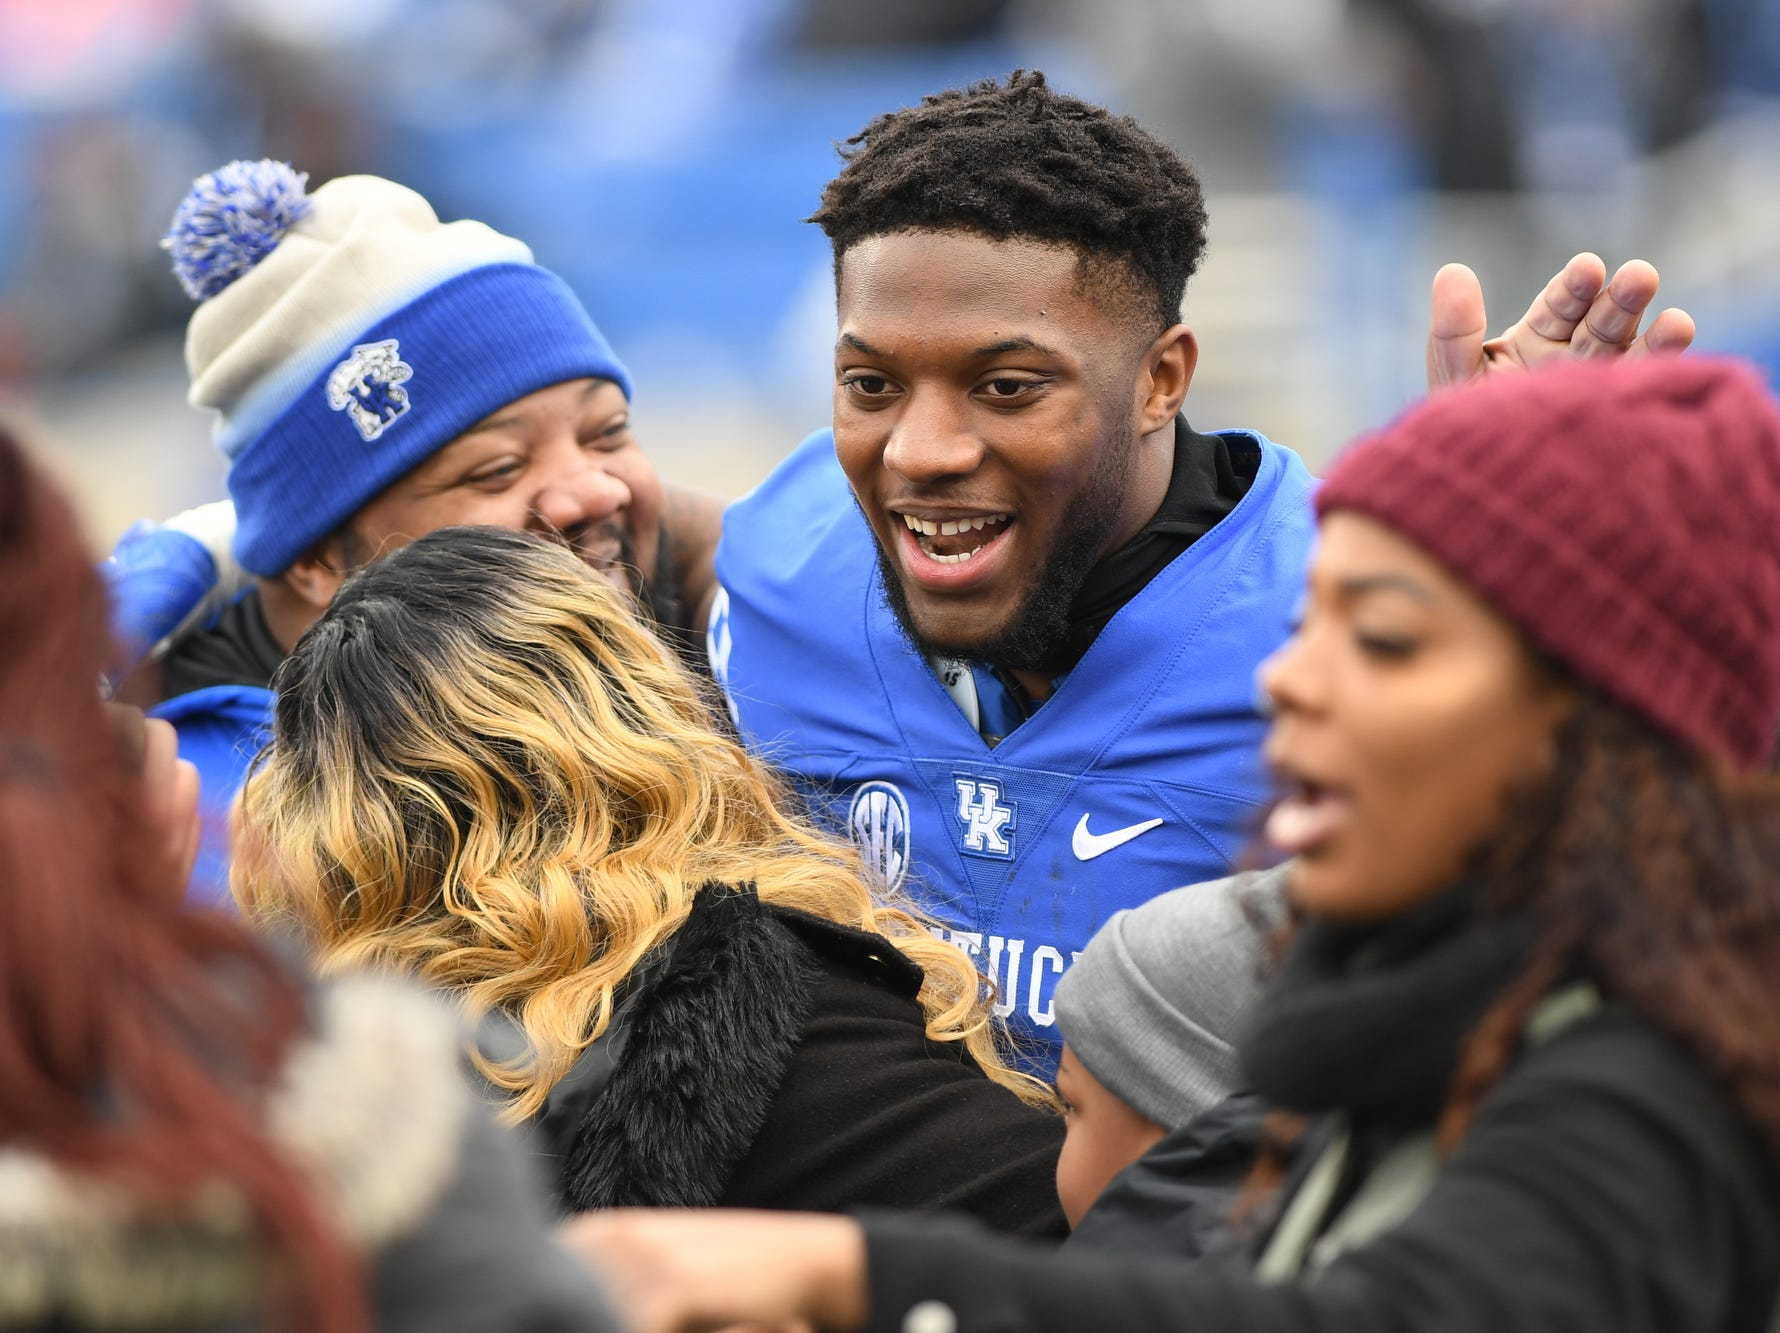 UK DE Josh Allen with his family on senior day before the University of Kentucky football game against Middle Tennessee at Kroger Field in Lexington, Kentucky on Saturday, November 17, 2018.